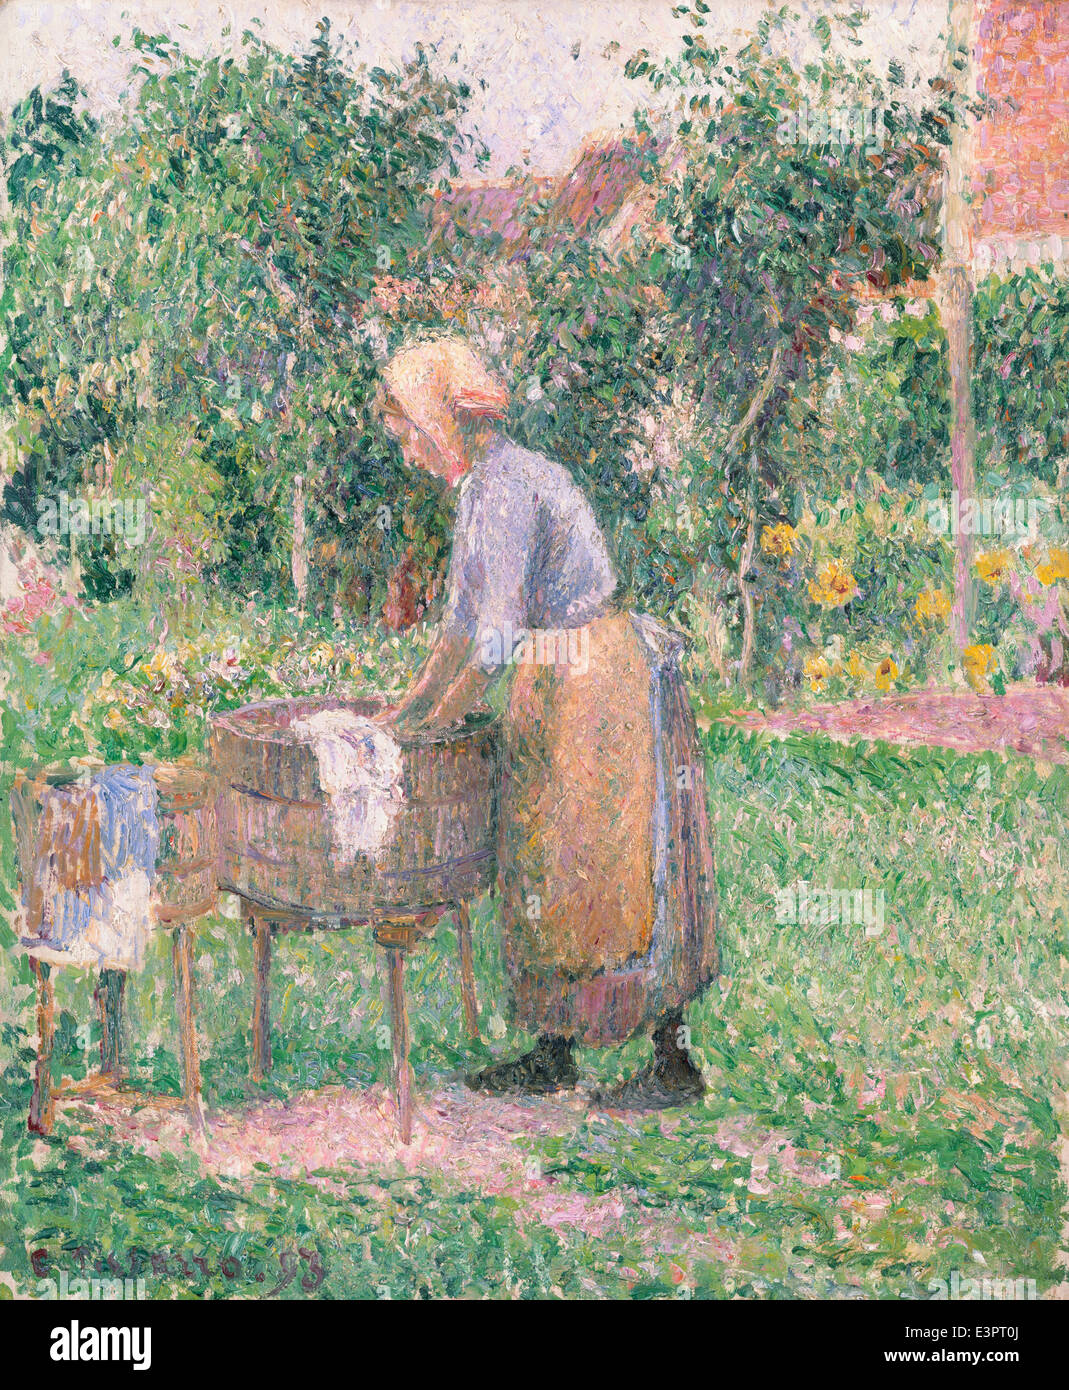 Camille Pissarro - A Washerwoman at Éragny - 1893 - Stock Image